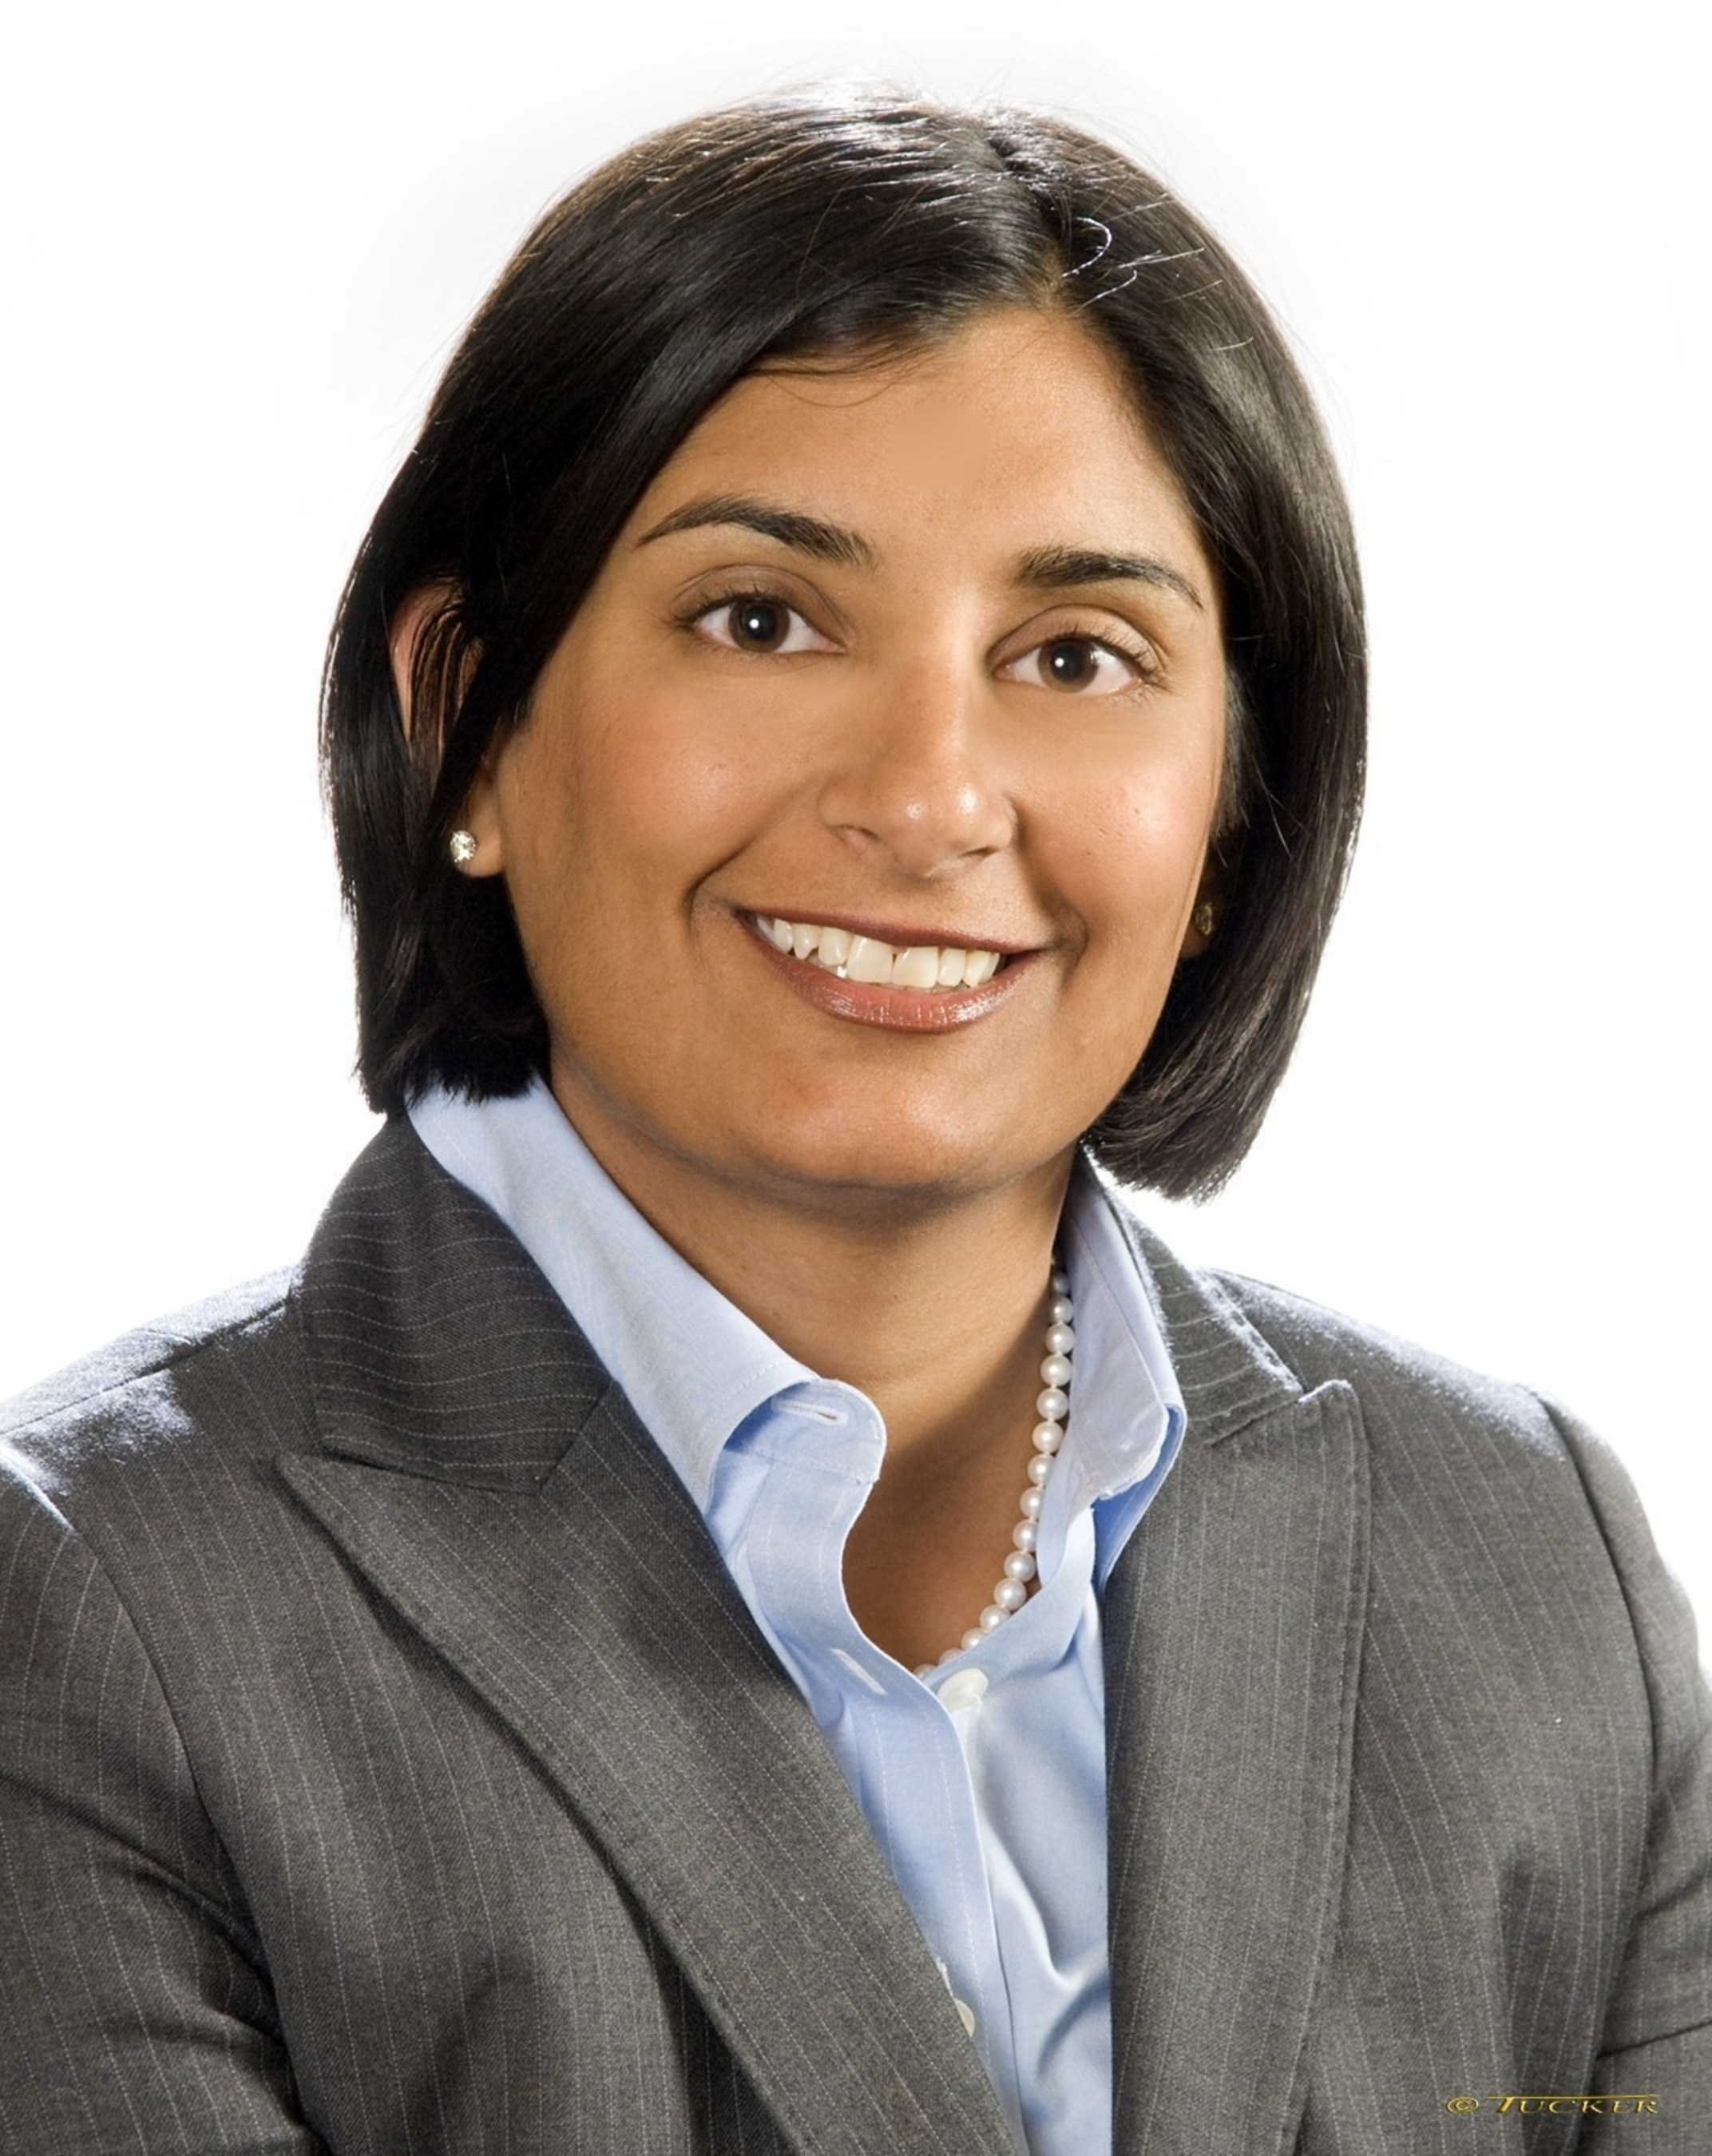 Manju Gupta selected to co-chair subcommittee of the ABA's prestigious Fidelity & Surety Law